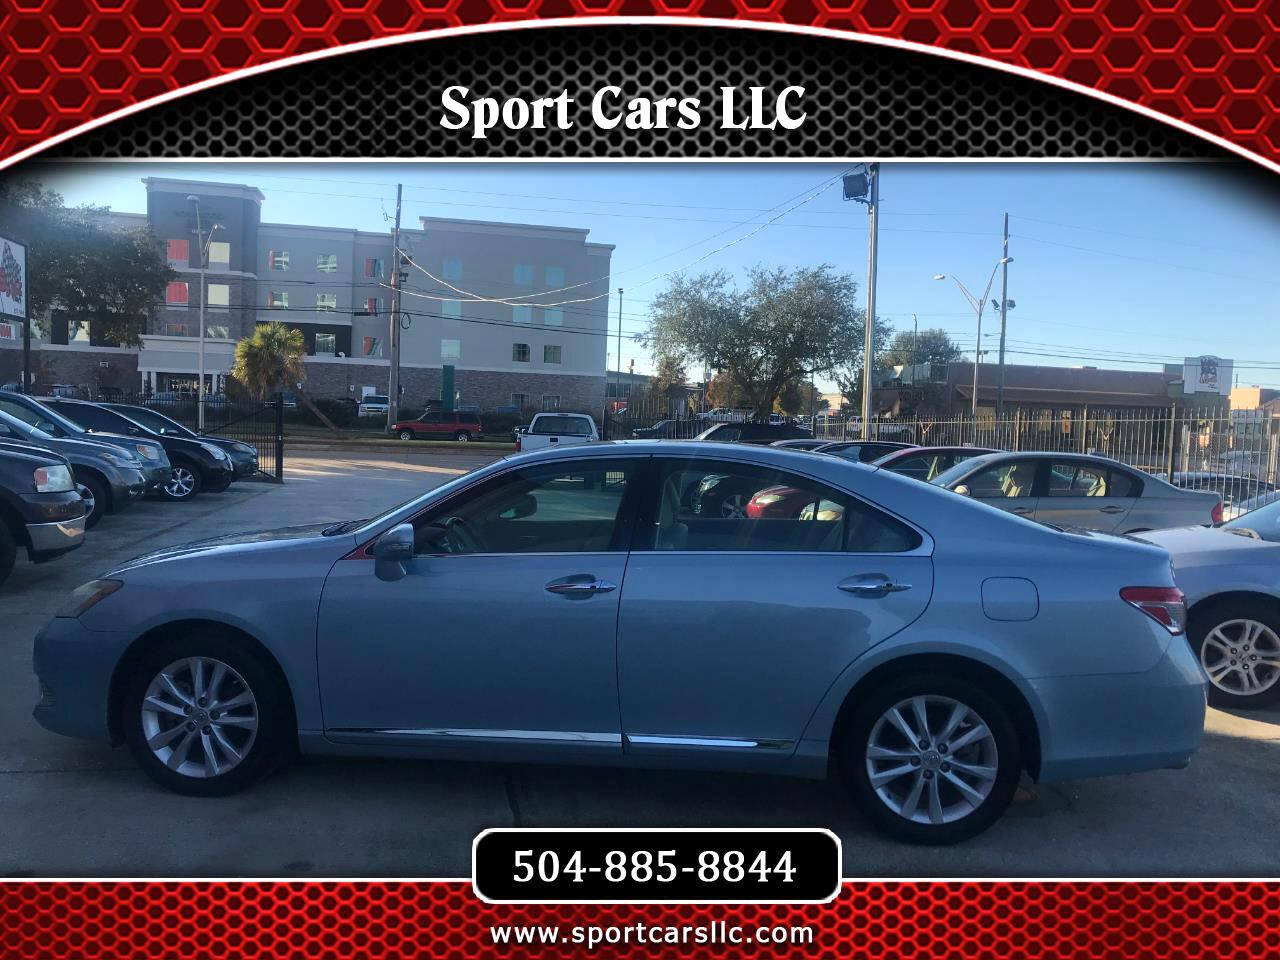 Used Cars For Sale Metairie La 70002 Sport Cars Llc